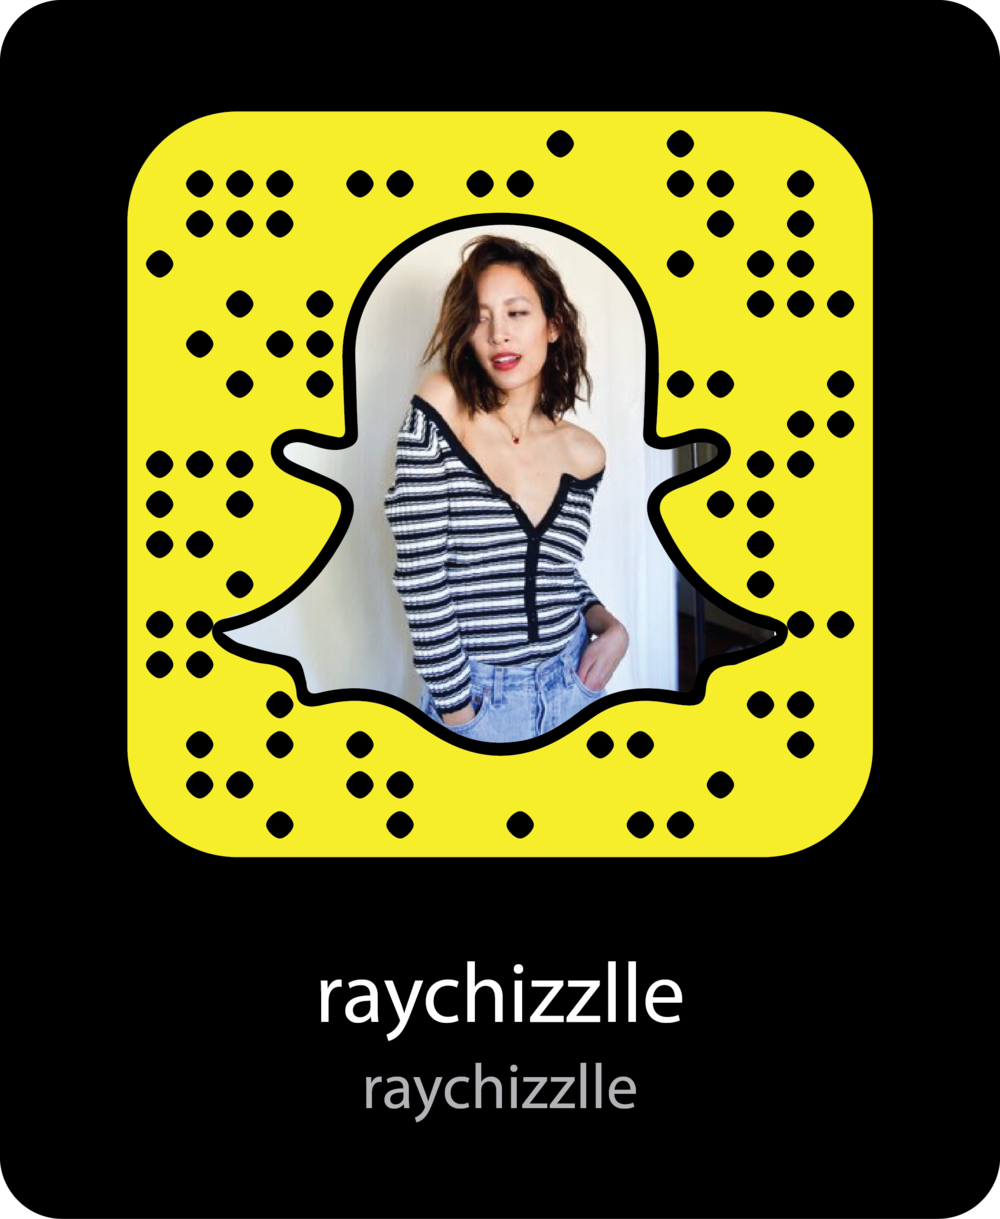 raychizzlle-Beauty-Bloggers-snapchat-snapcode.png